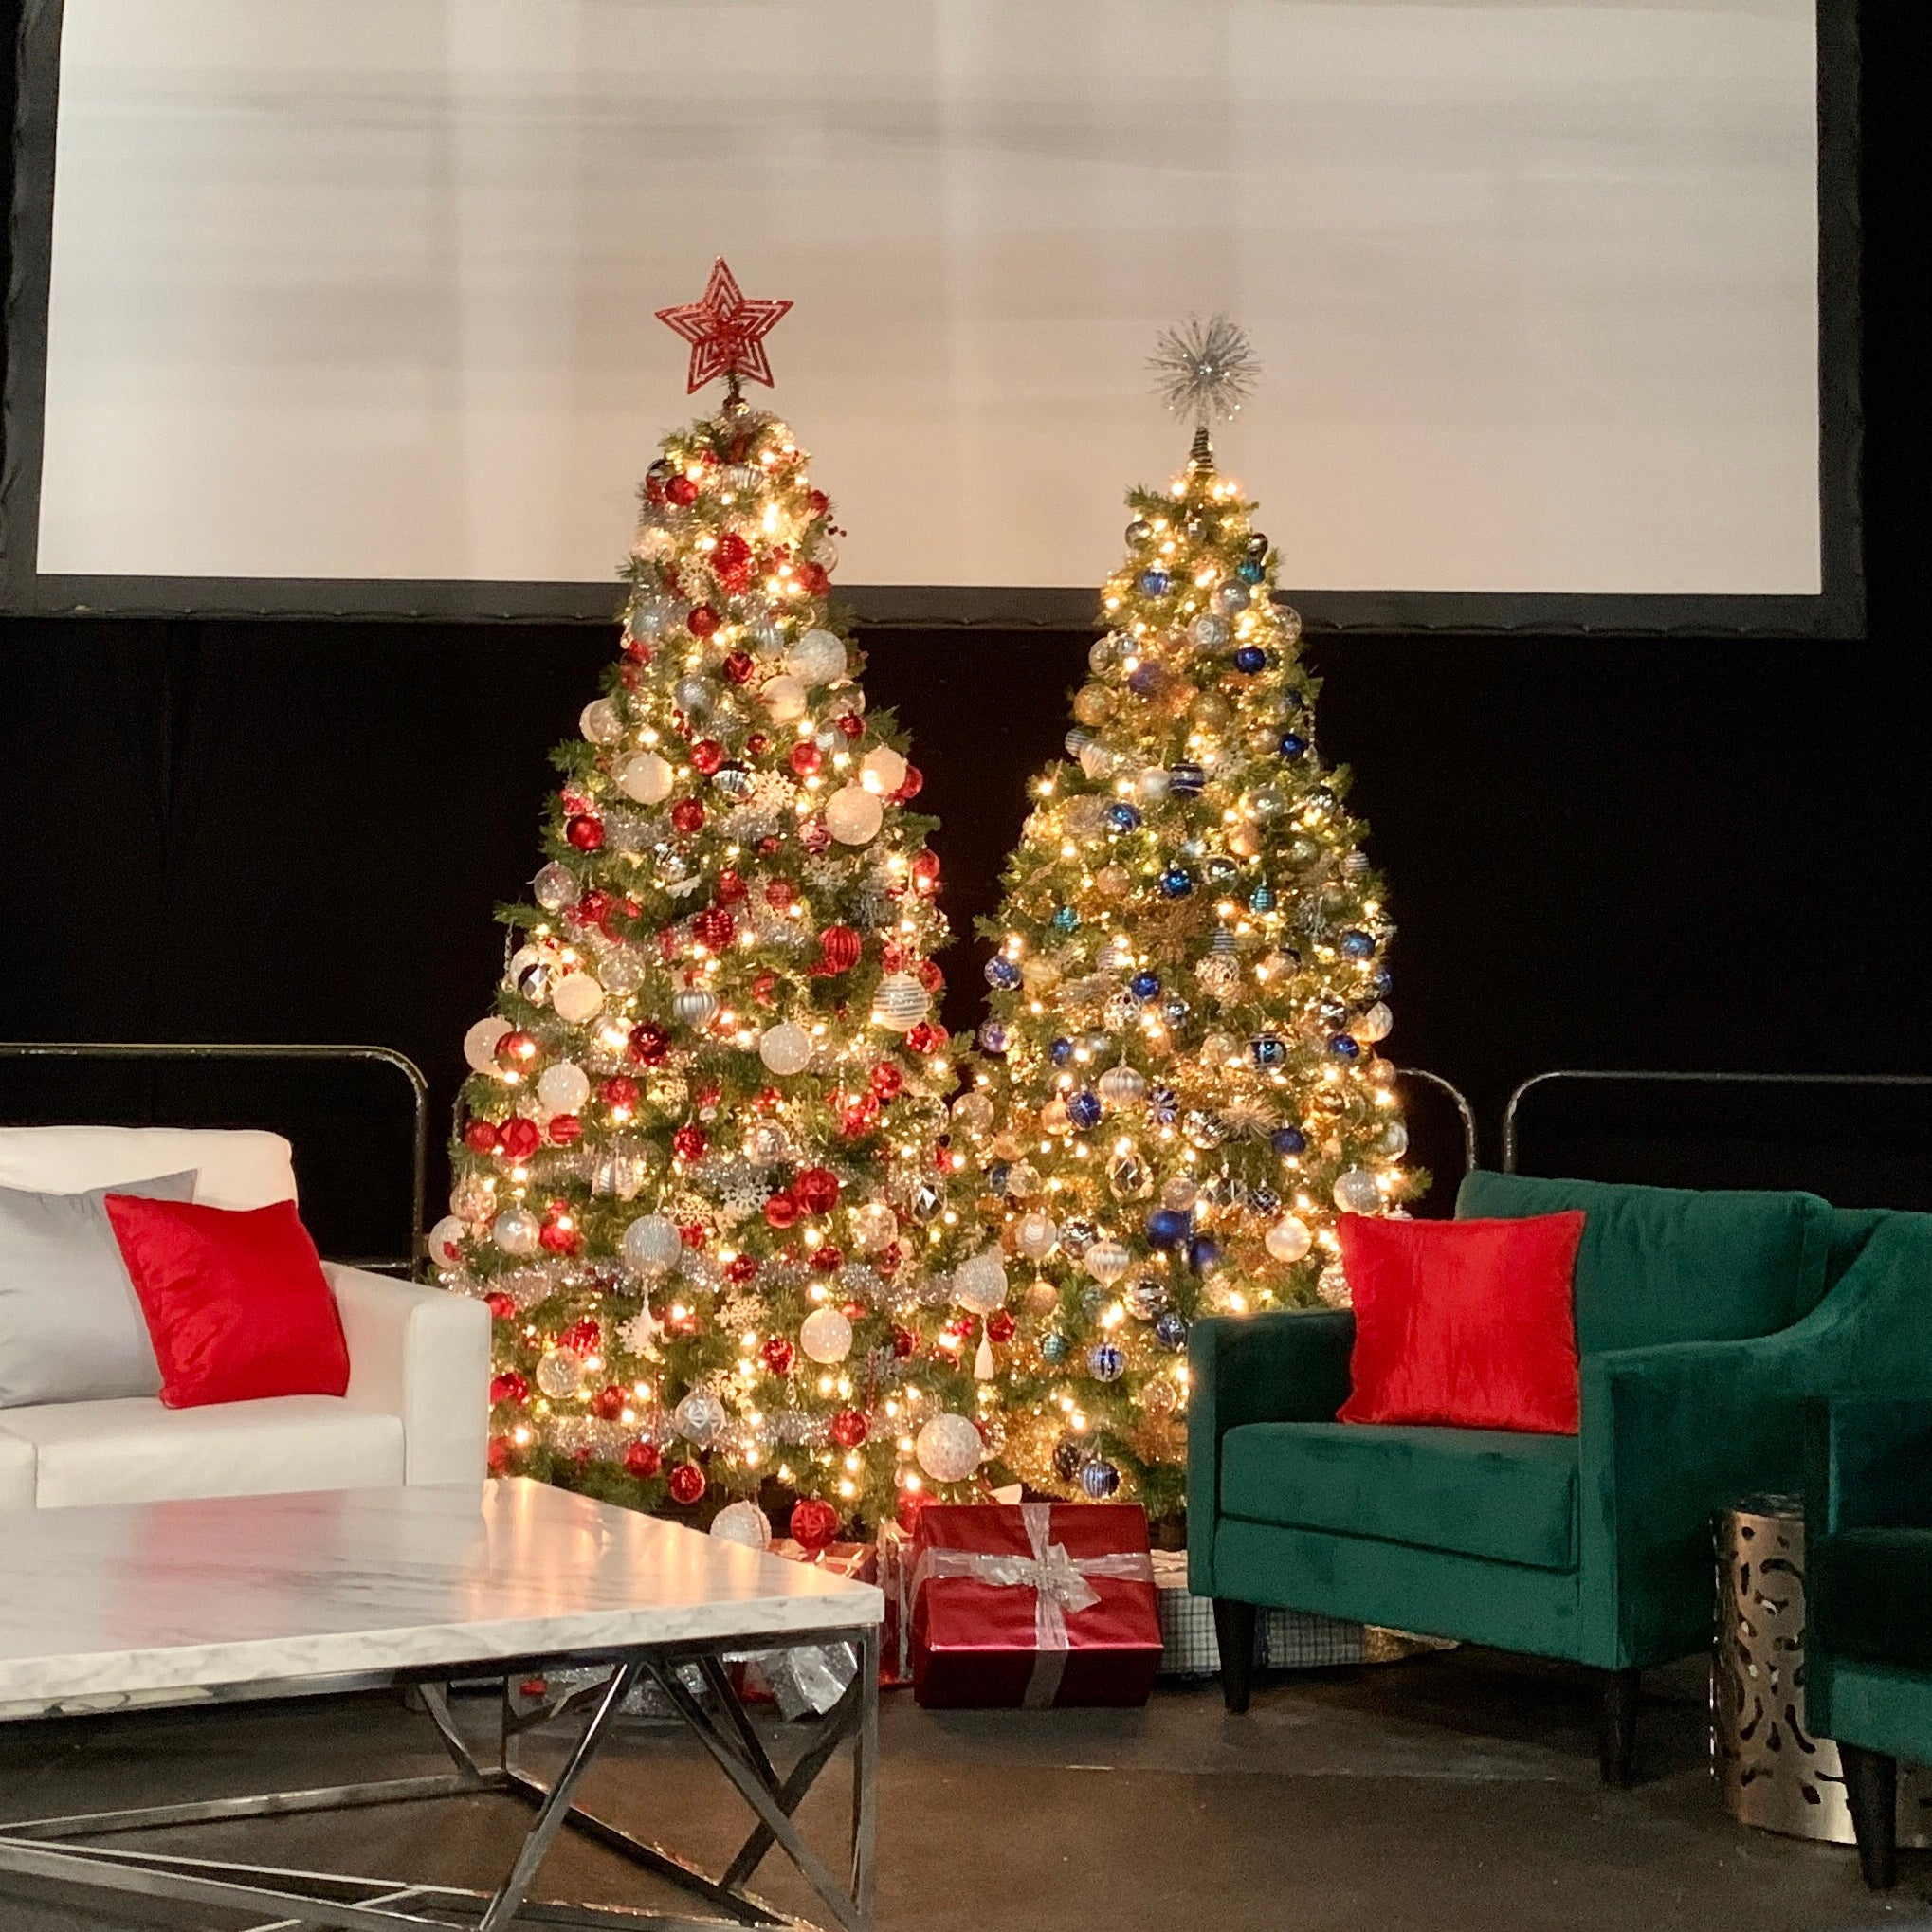 Decorated tree cluster on stage at commercial event